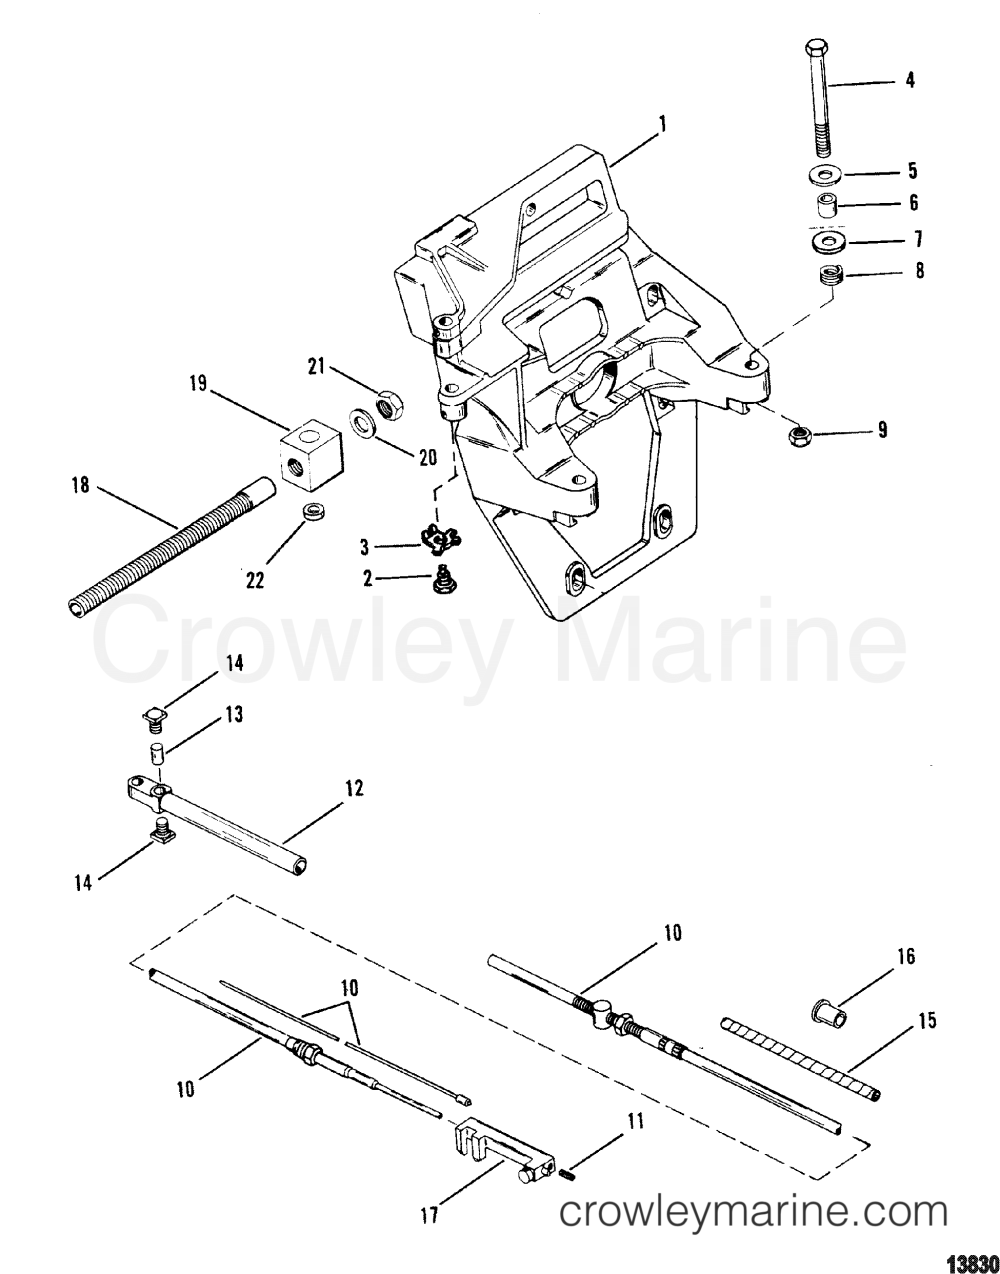 medium resolution of transom plate and shift cable 1990 mercruiser alpha 1 65 1 full hydraulic steering mercruiser inside transom mercruiser transom plate diagram